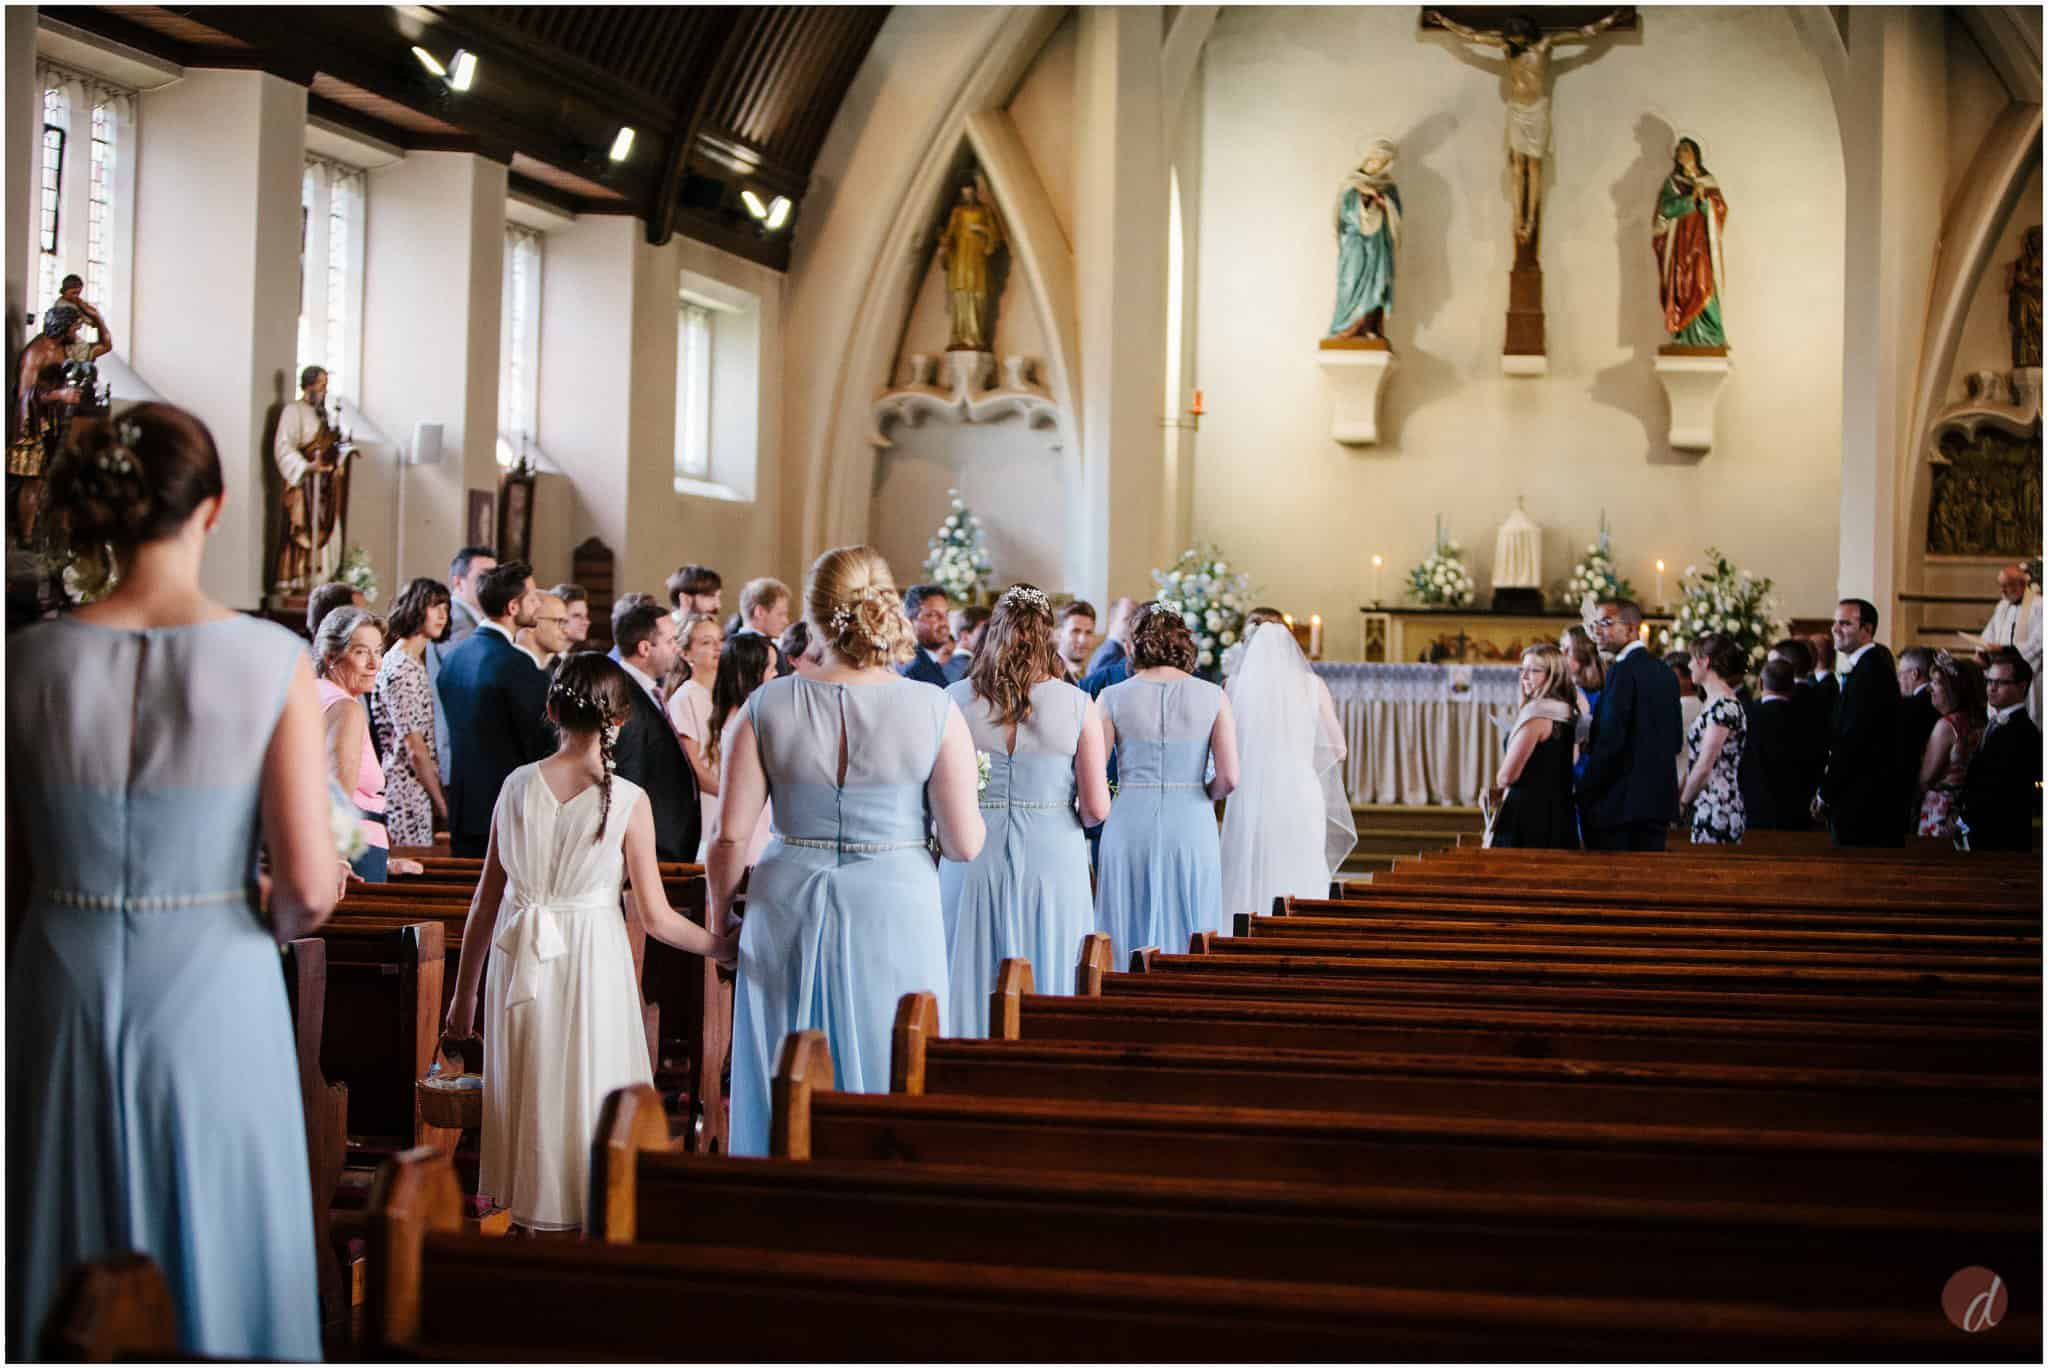 Our Lady Help of Christians wedding